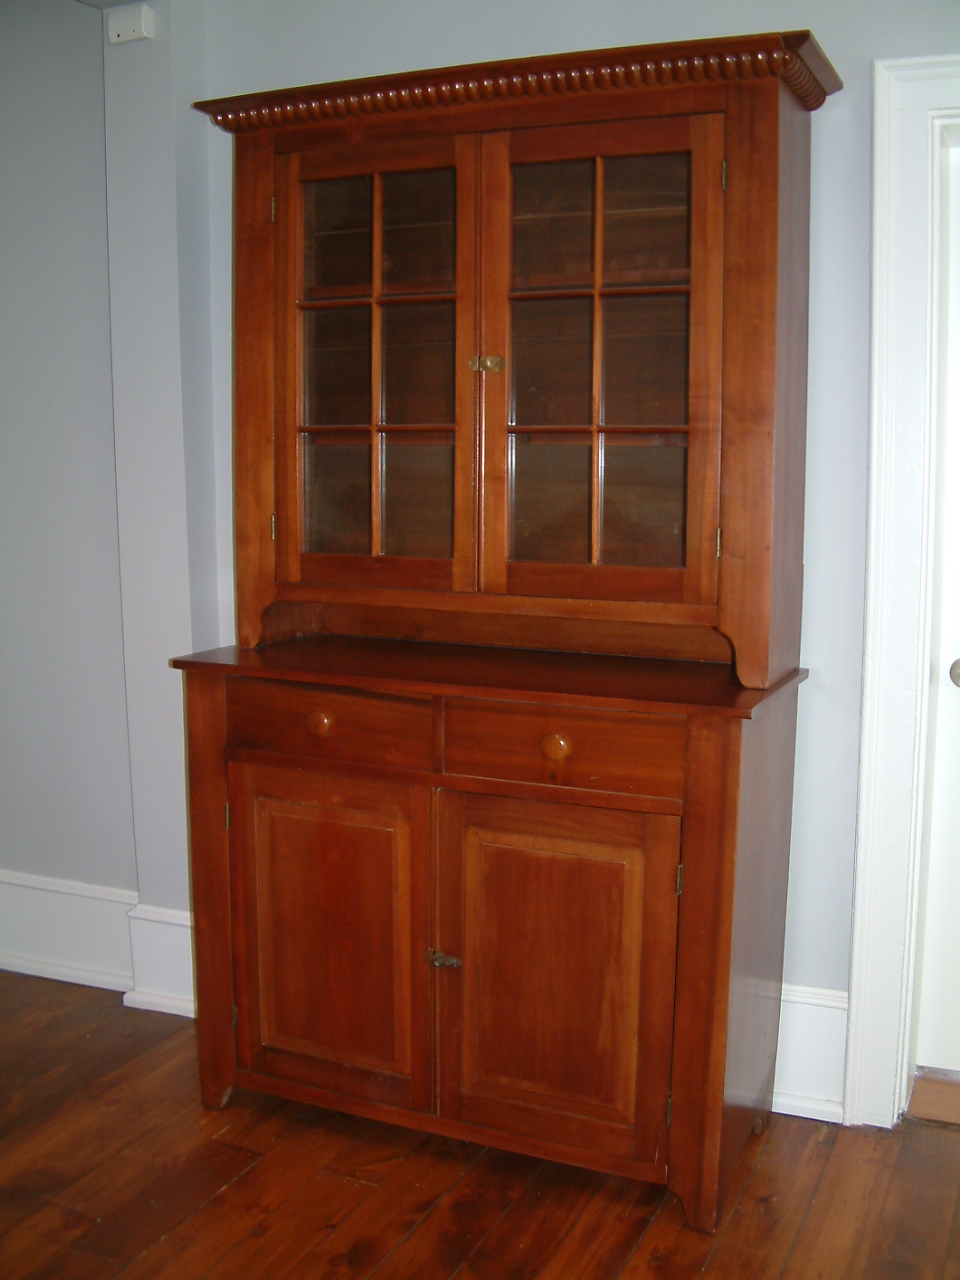 Antique Furniture Bodenheimer Mayer House